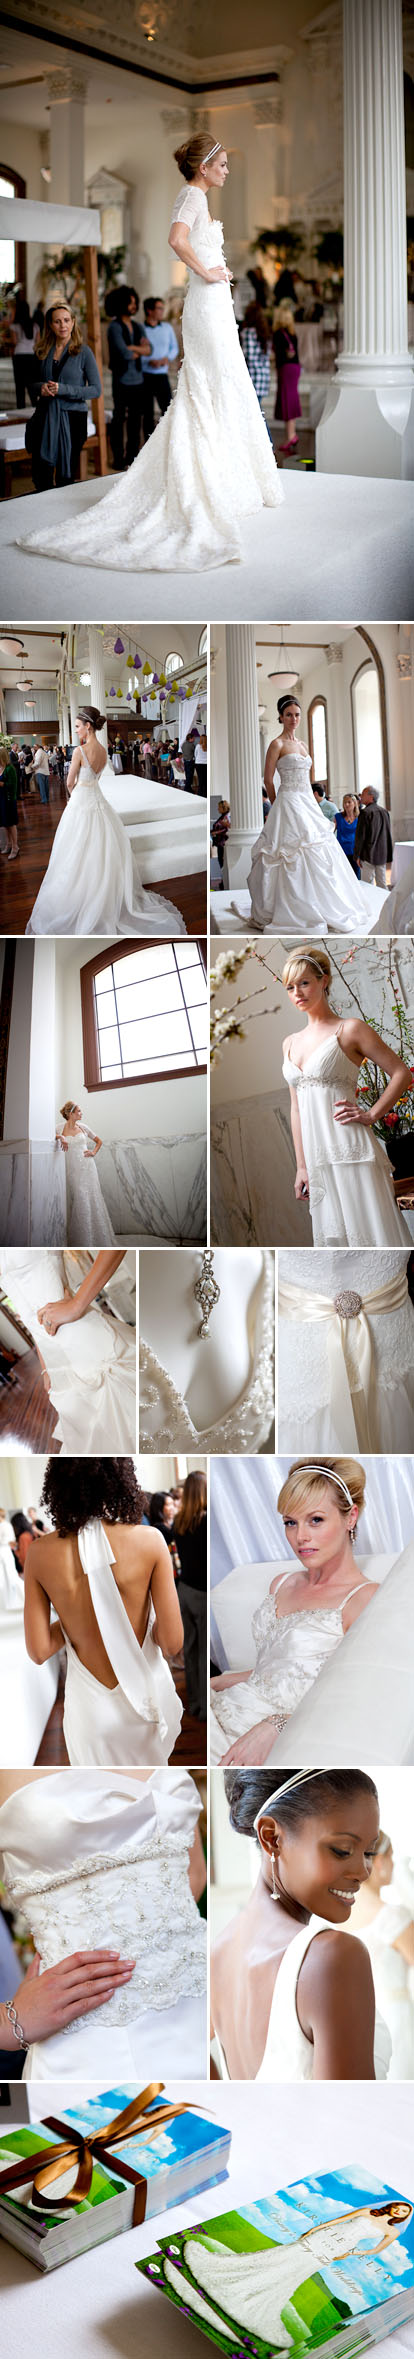 Kirstie Kelly Couture wedding fashion at A Soolip Wedding, images by Junebug Weddings